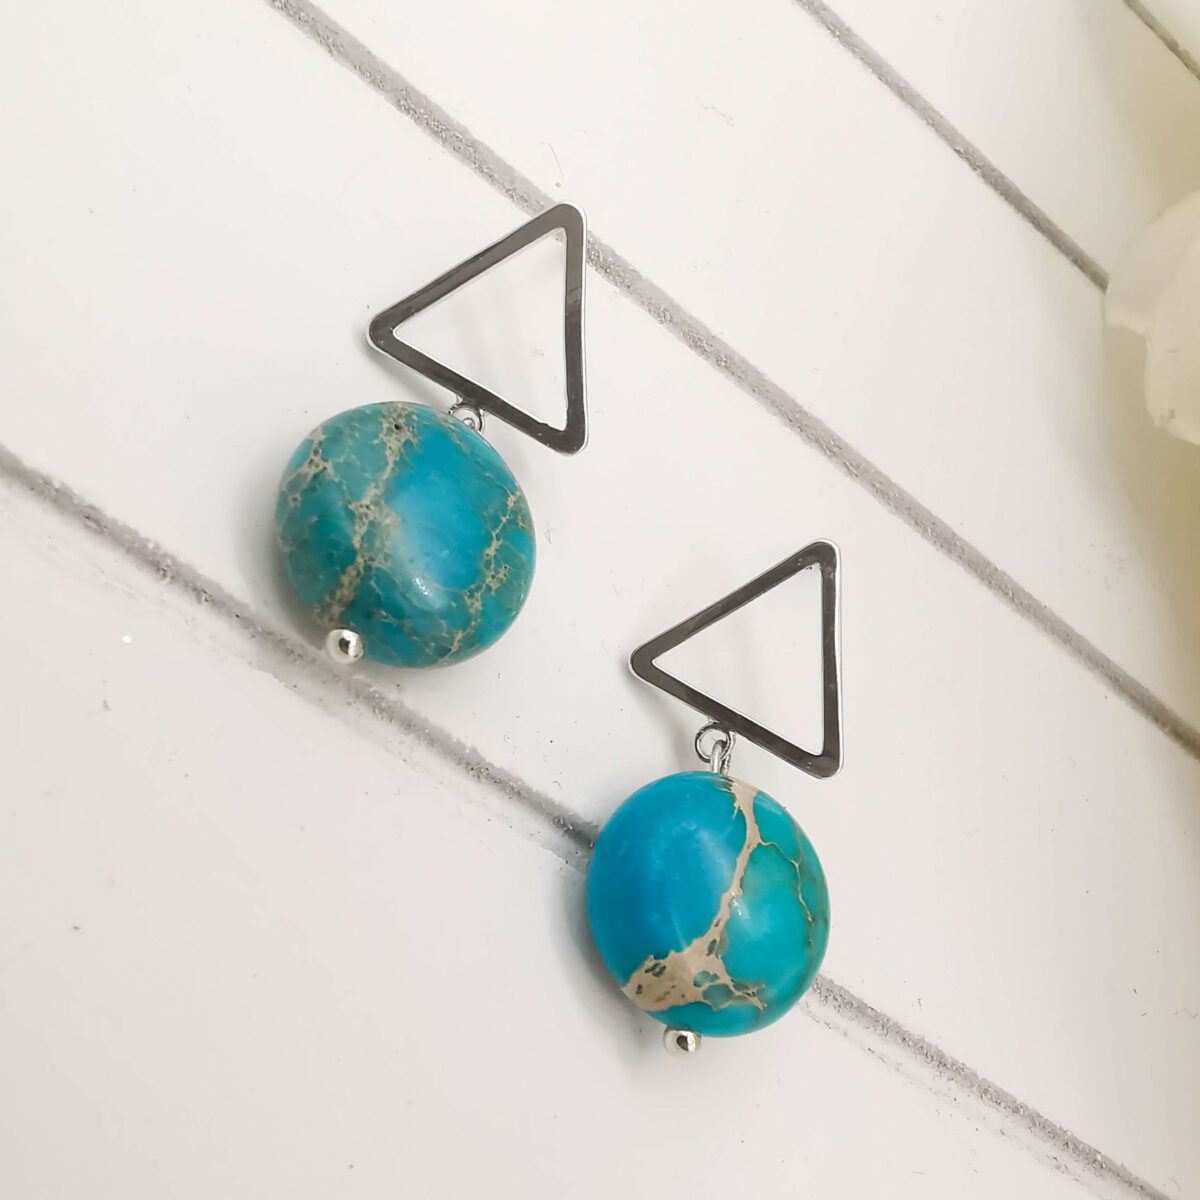 REVA - Silver Unique Turquoise Stone Earrings bottom angle view up